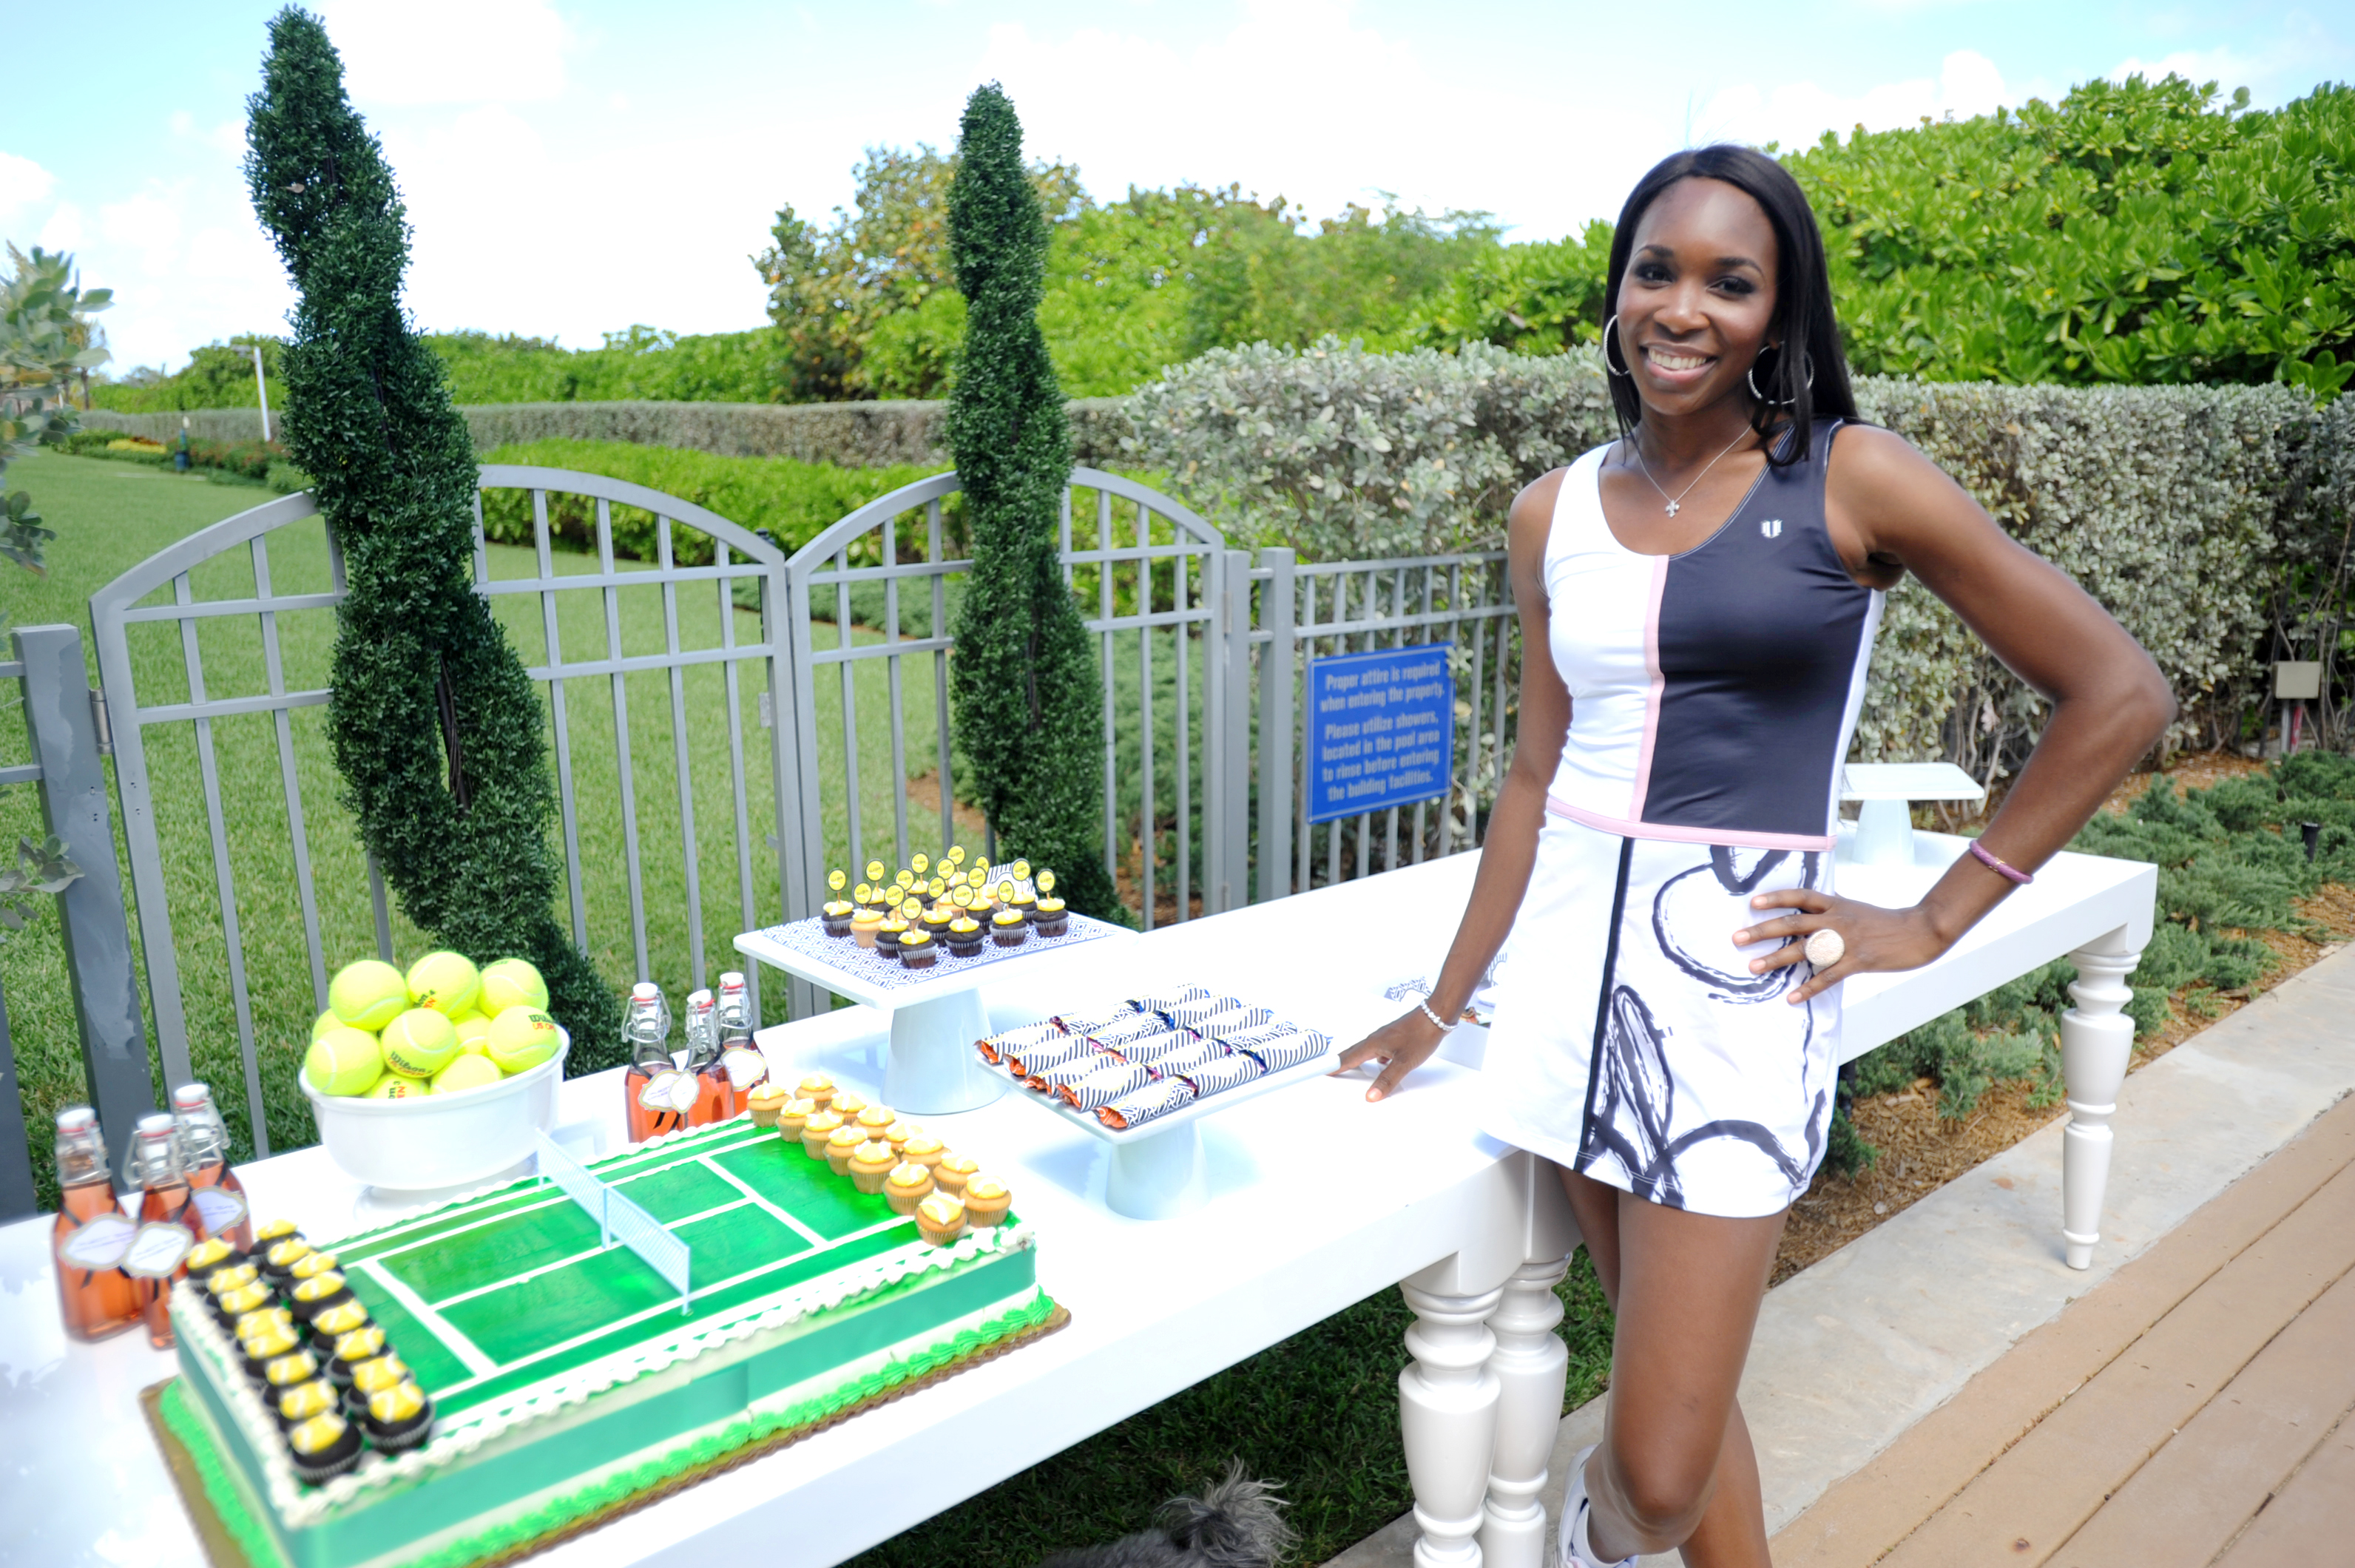 Venus Williams at the Launch of the Venus Williams EleVen Capsule Collection at The Bath Club, Miami Beach